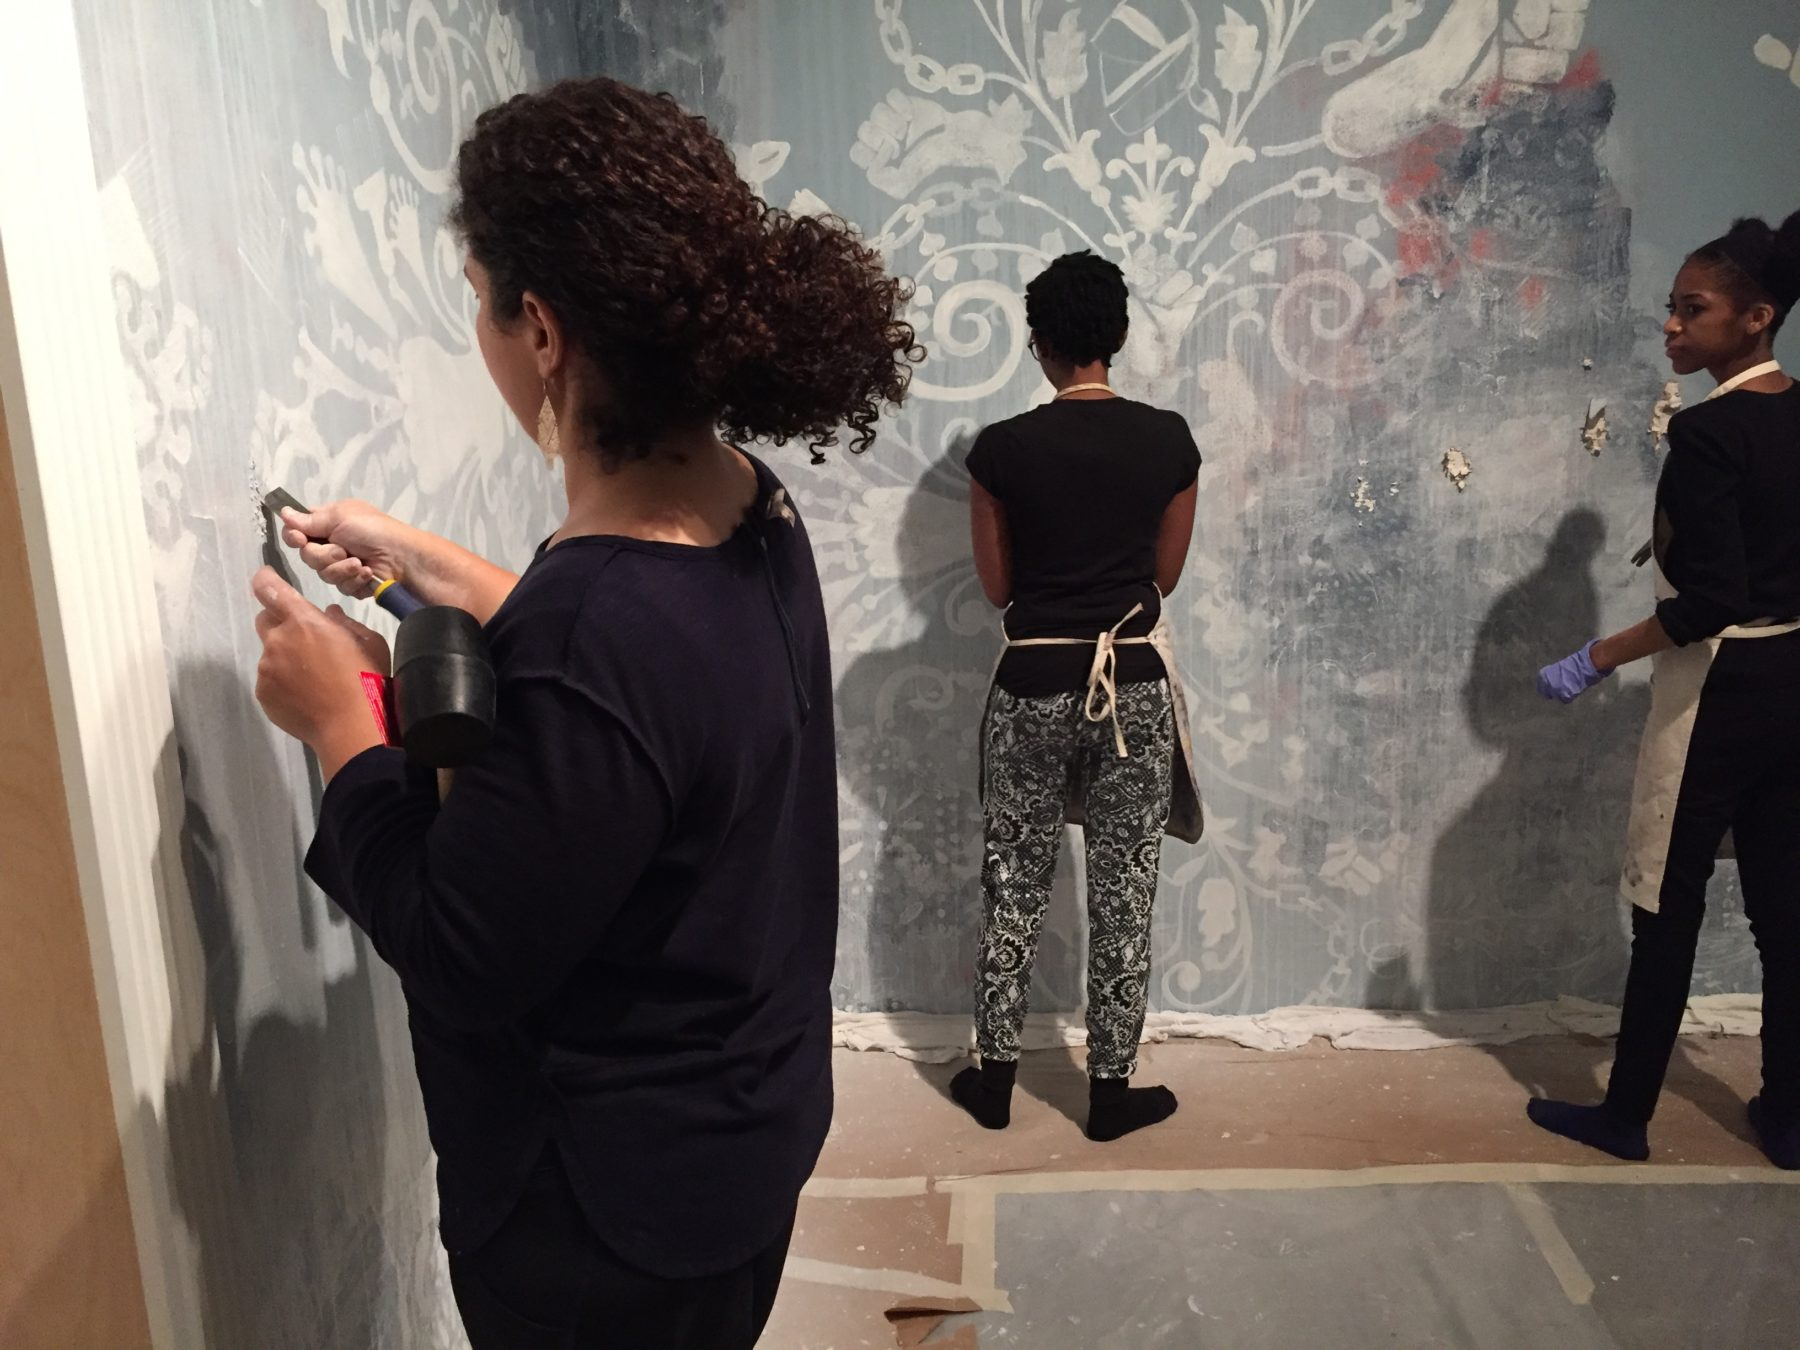 A group of volunteers help artist Firelei Baez scrape paint off a wall in her exhibition gallery.